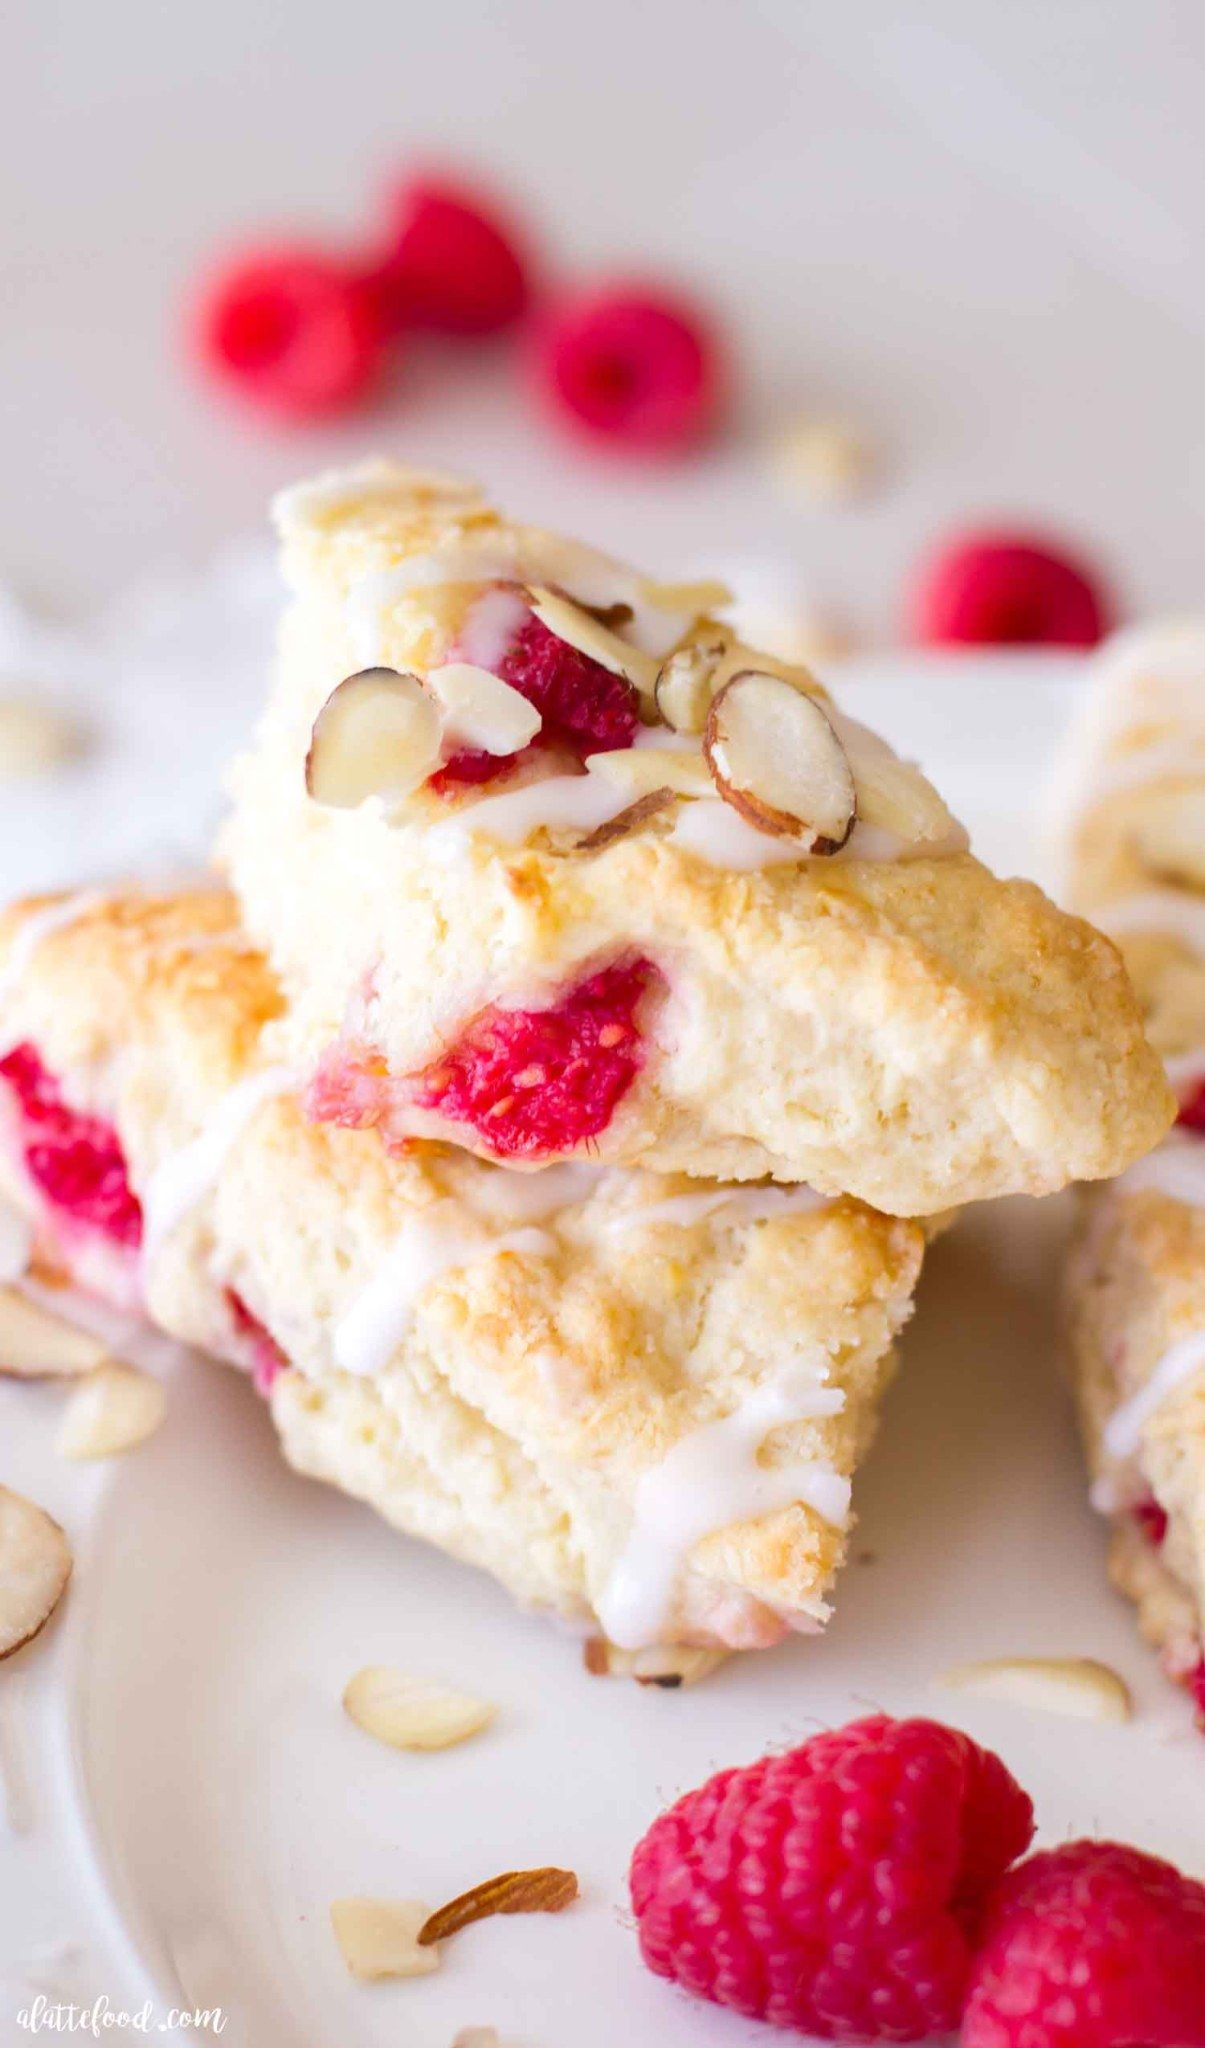 Flaky And Tender Raspberry Cream Scones Are Made With Sour Cream And Butter Making These Raspberry Almond Scon In 2020 Scones Recipe Easy Scone Recipe Homemade Scones